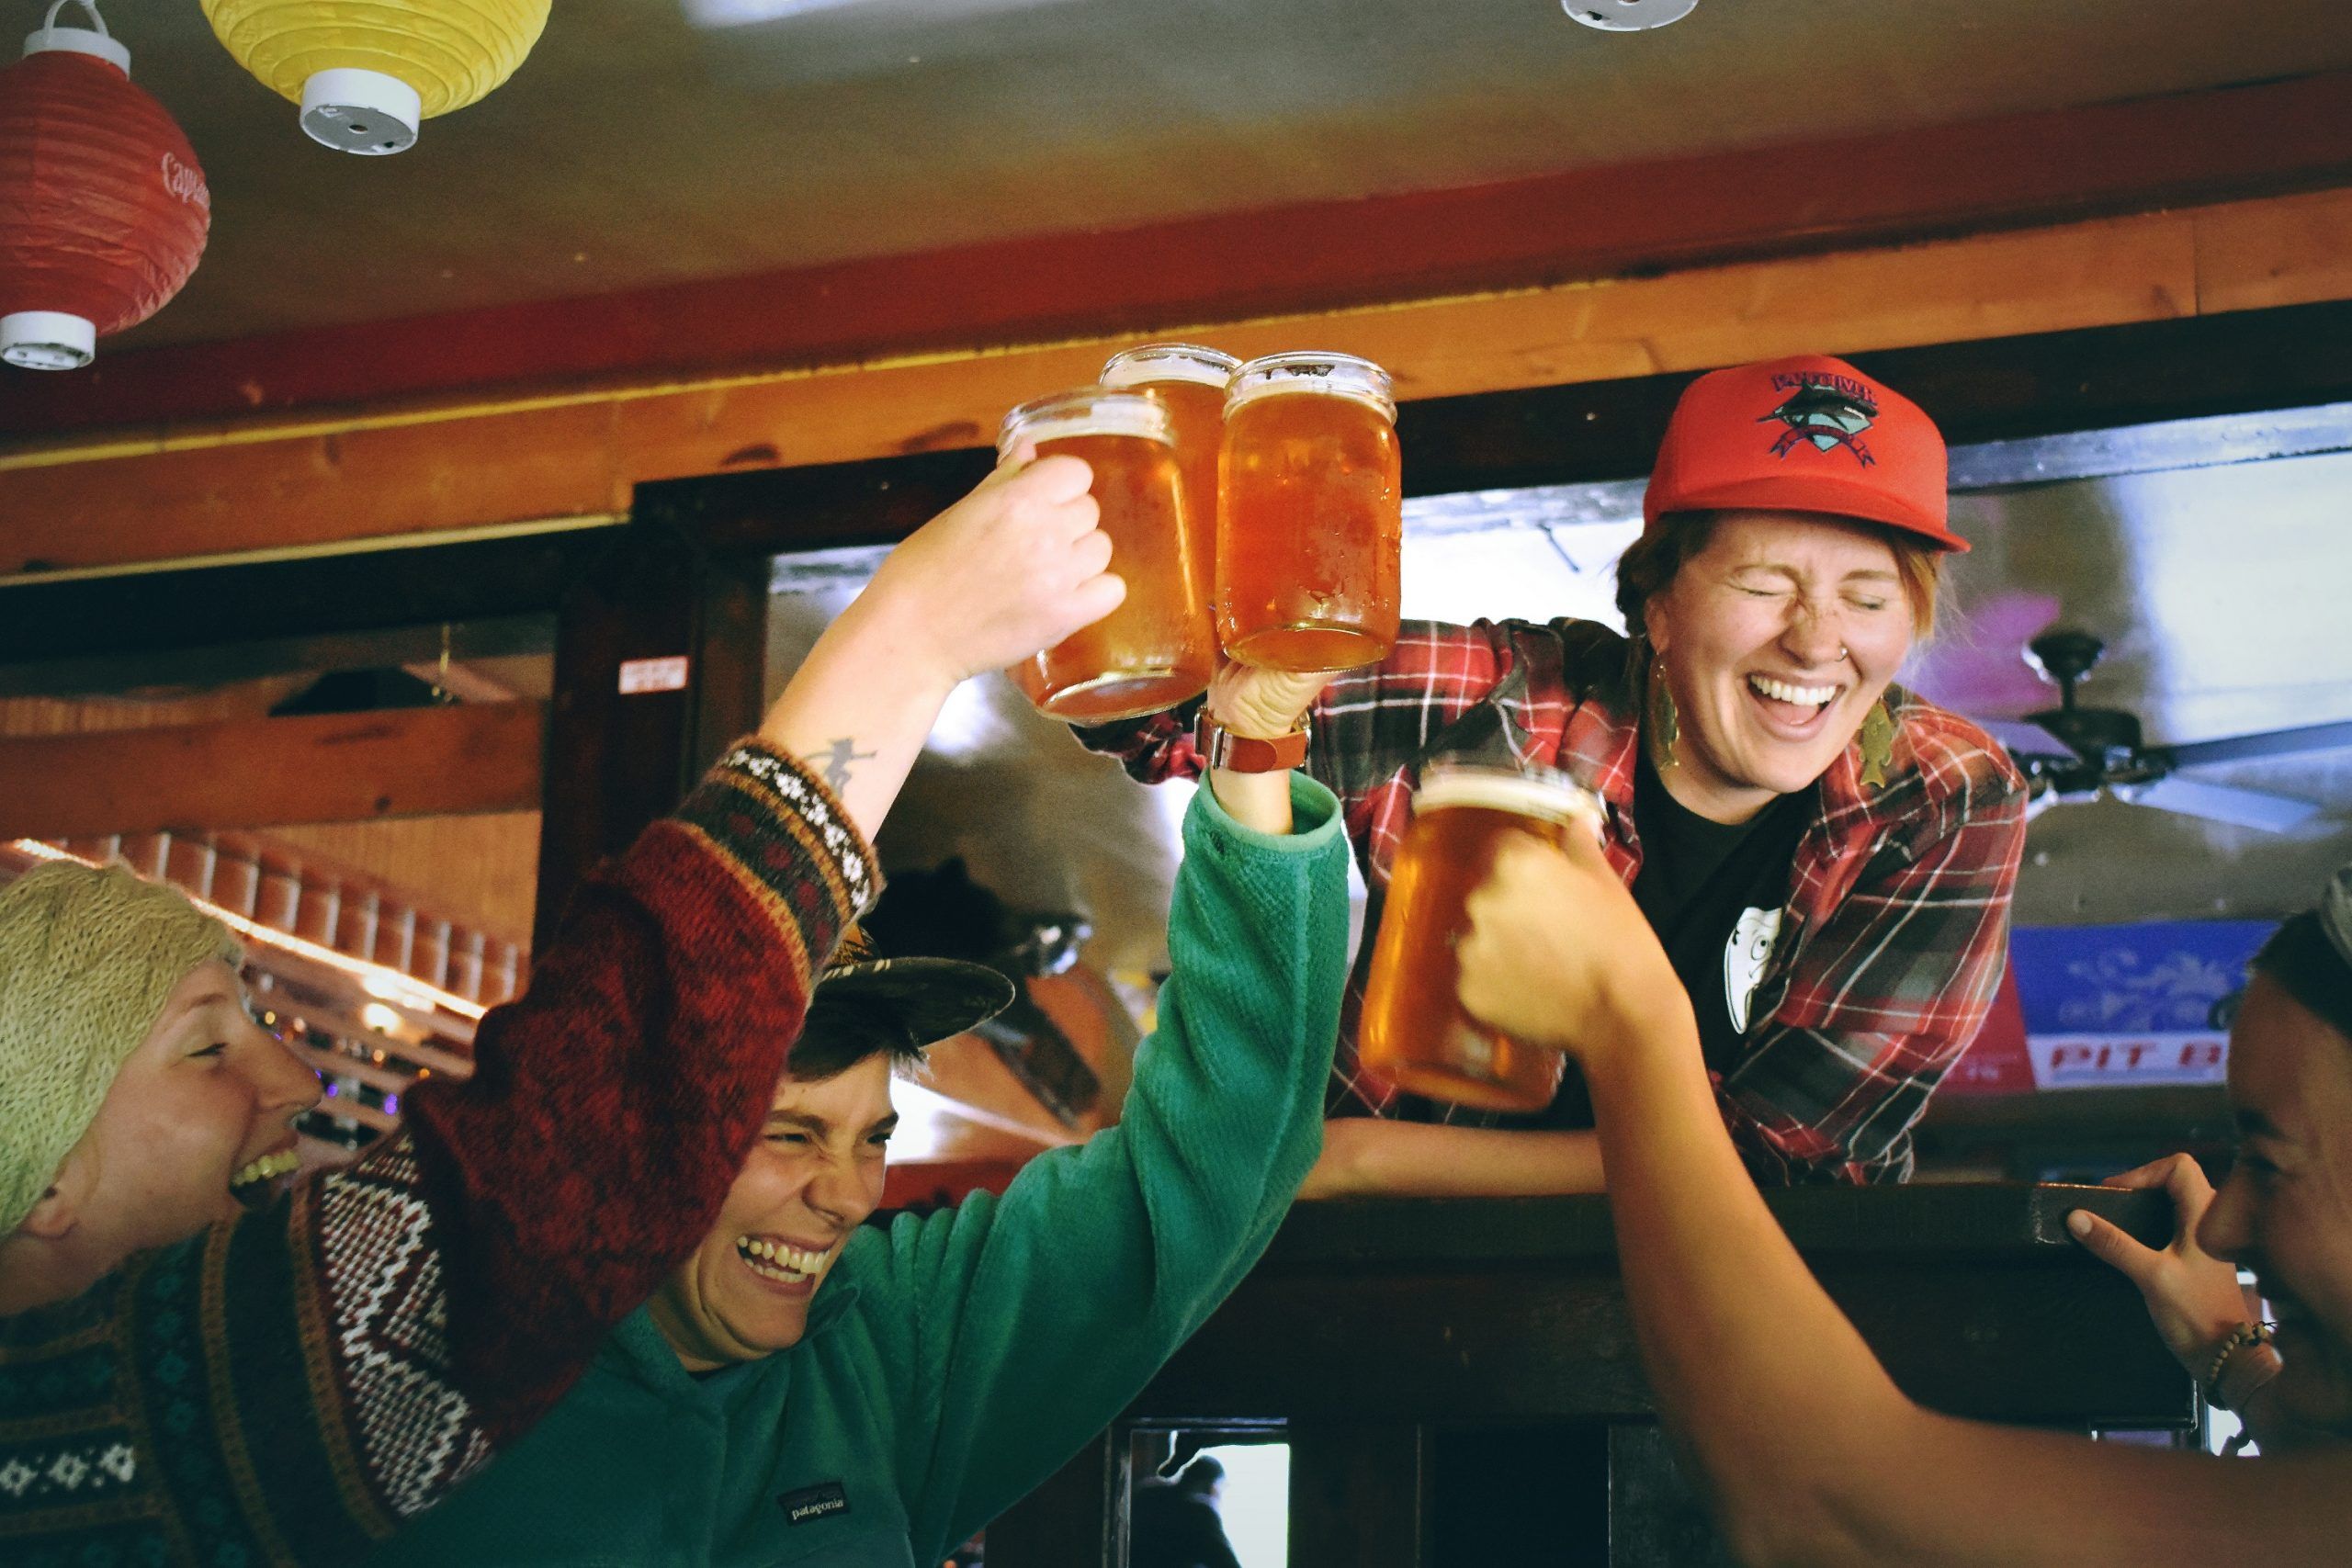 hazing, laughing people with beer mugs